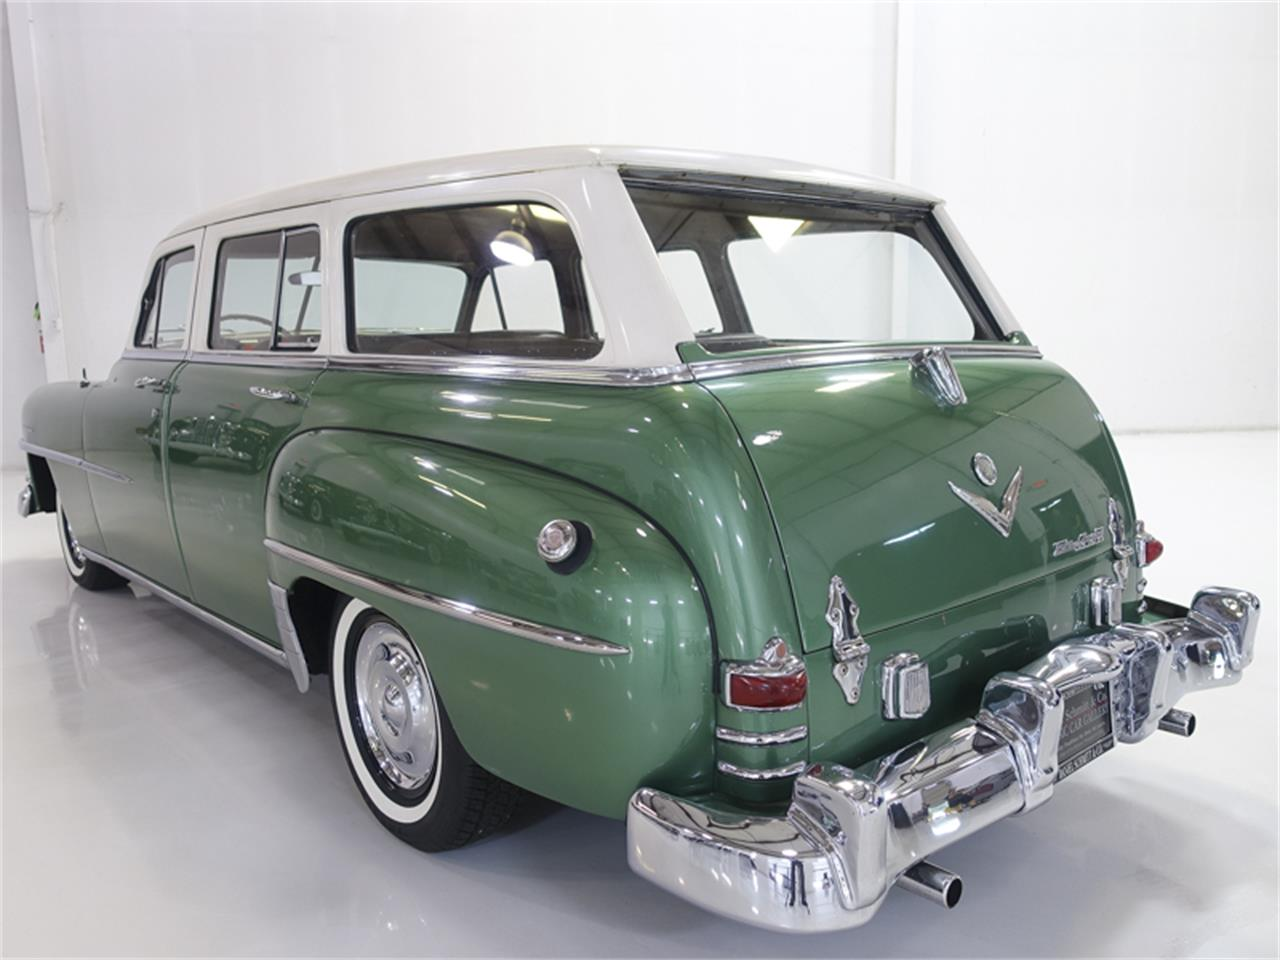 1952 Chrysler Saratoga for sale in St. Louis, MO – photo 12